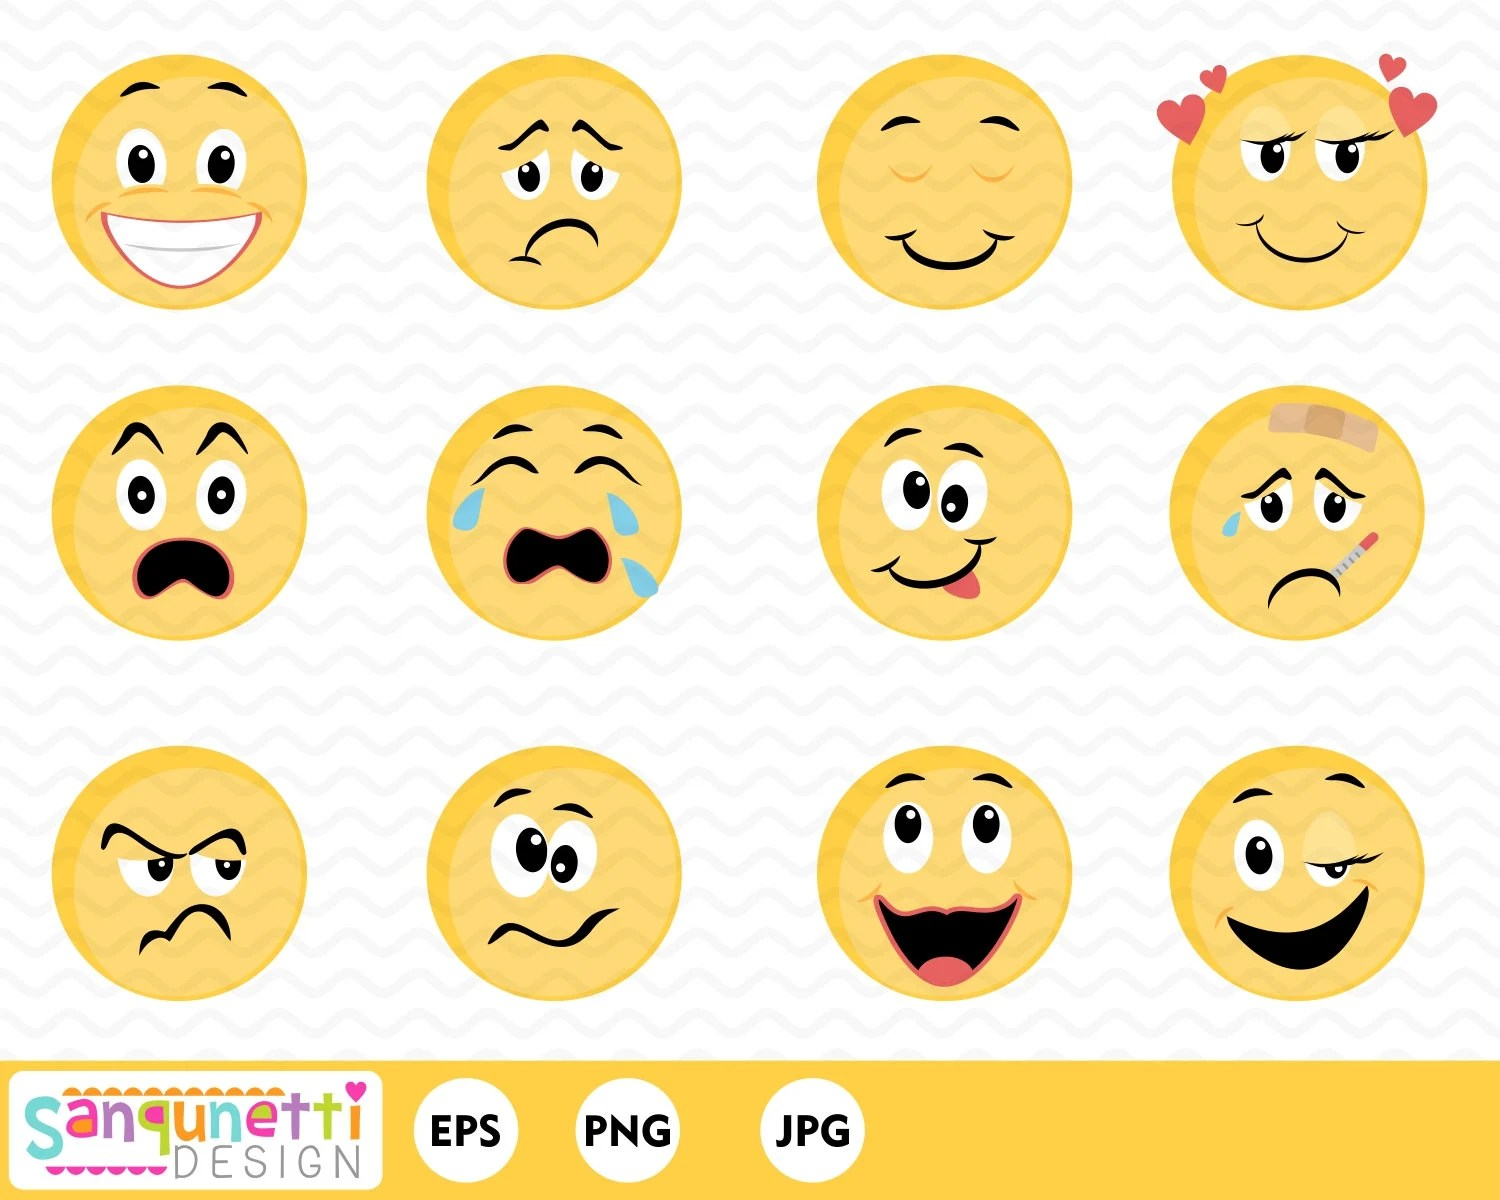 Smiley Face Feelings Clipartemoji Digital Art Instant